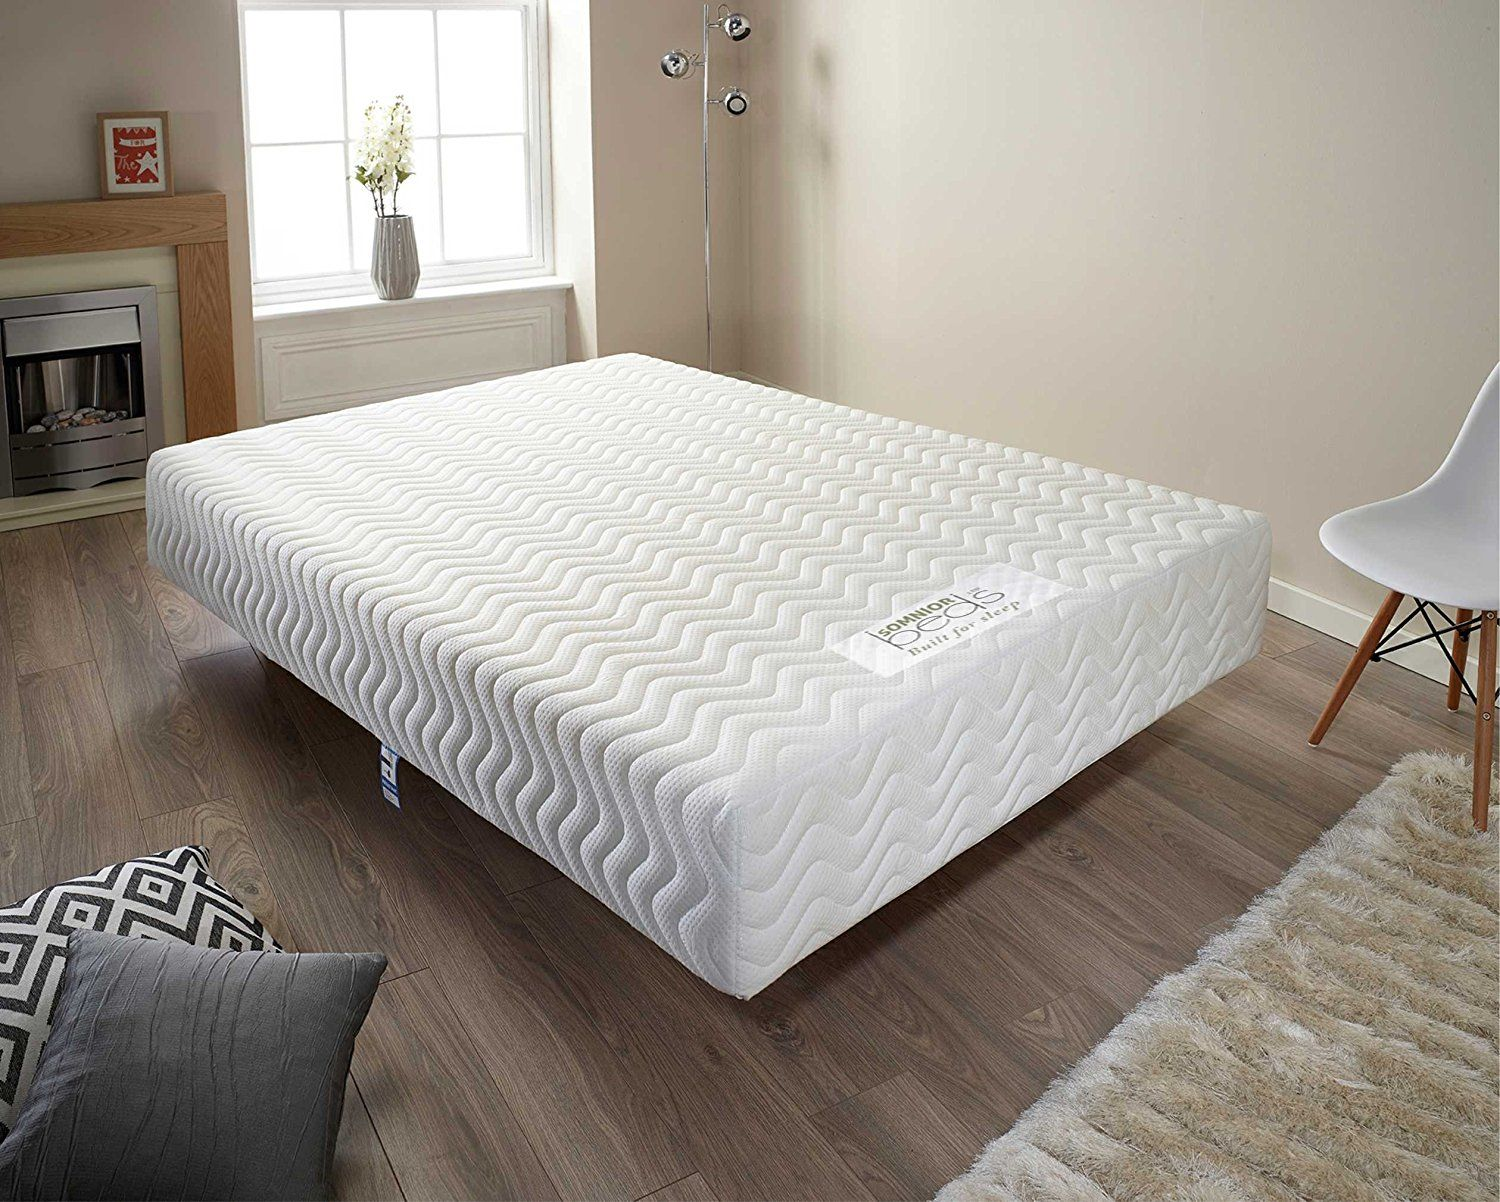 100 Memory Foam Mattress Topper All Sizes And Thickness 1 2 3